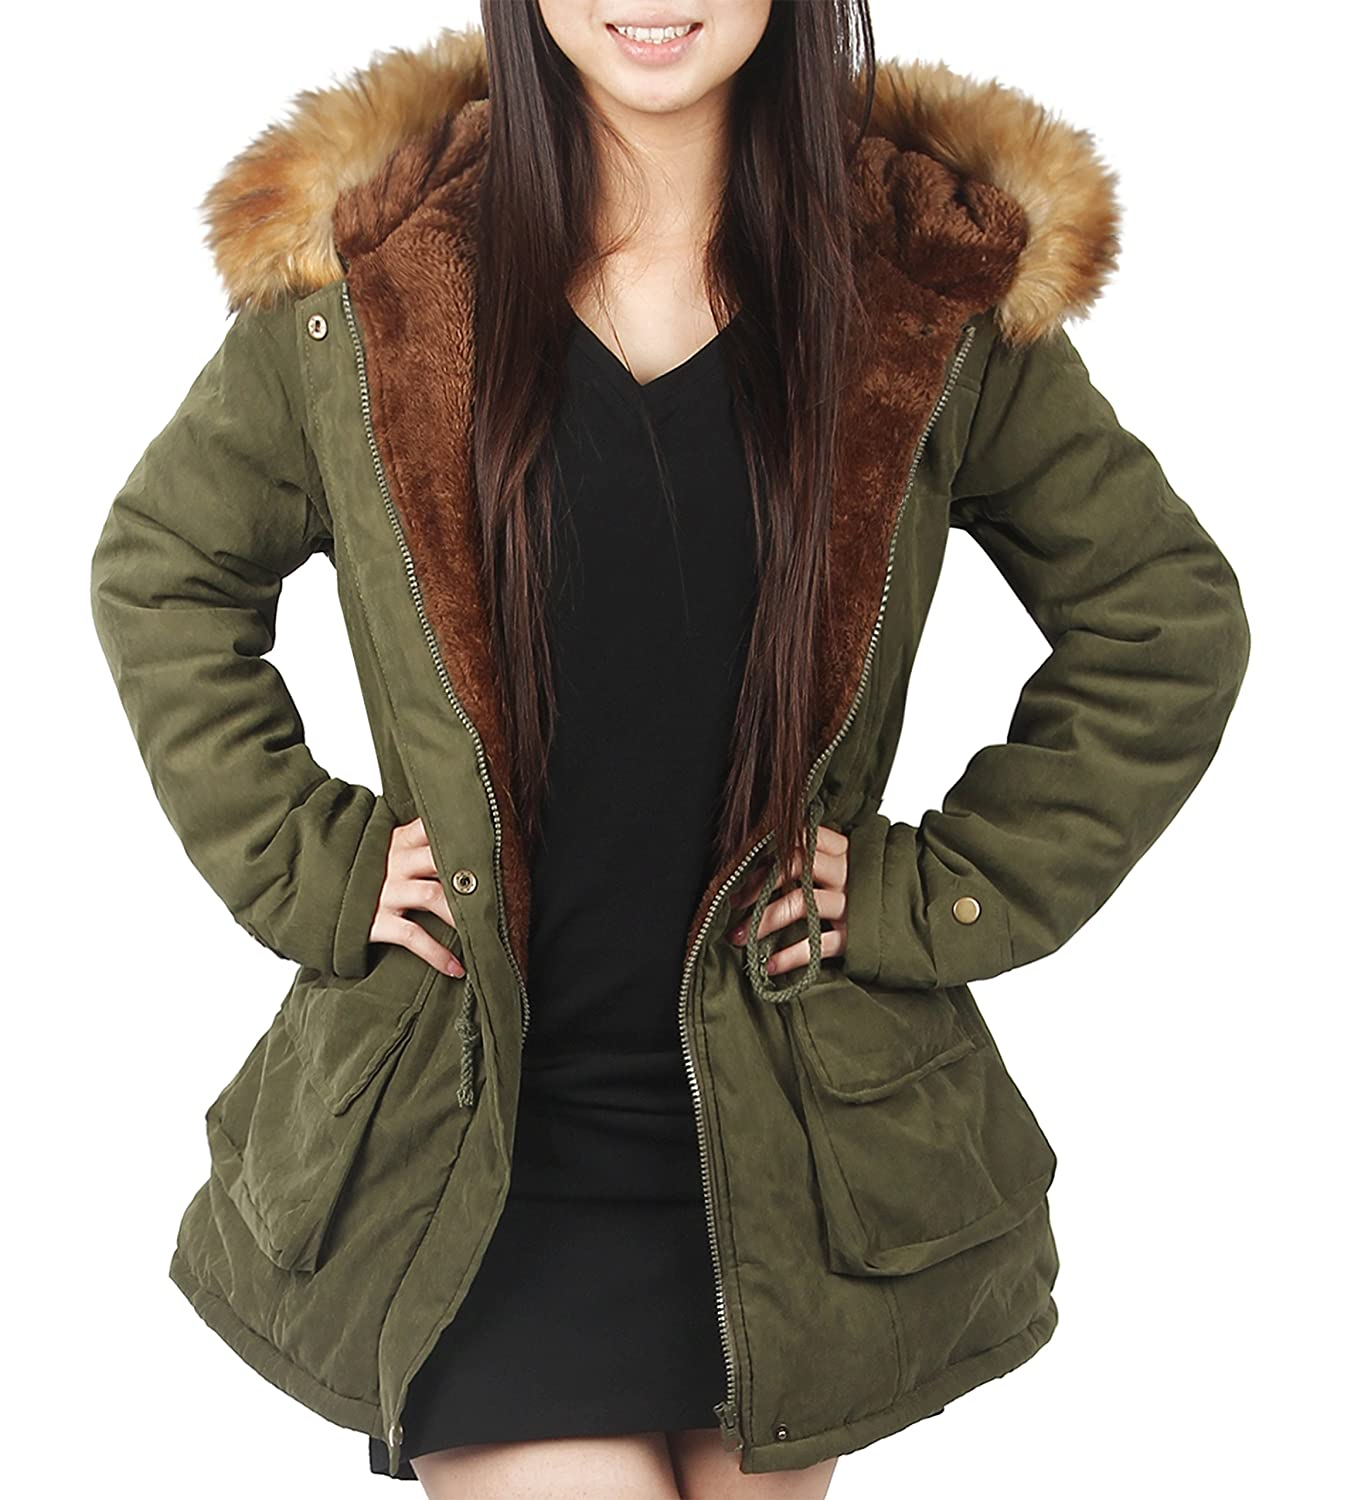 4How Parka Coat with Hood for Women Black Olive Green UK Size 10 12 14 16 18 S25616270